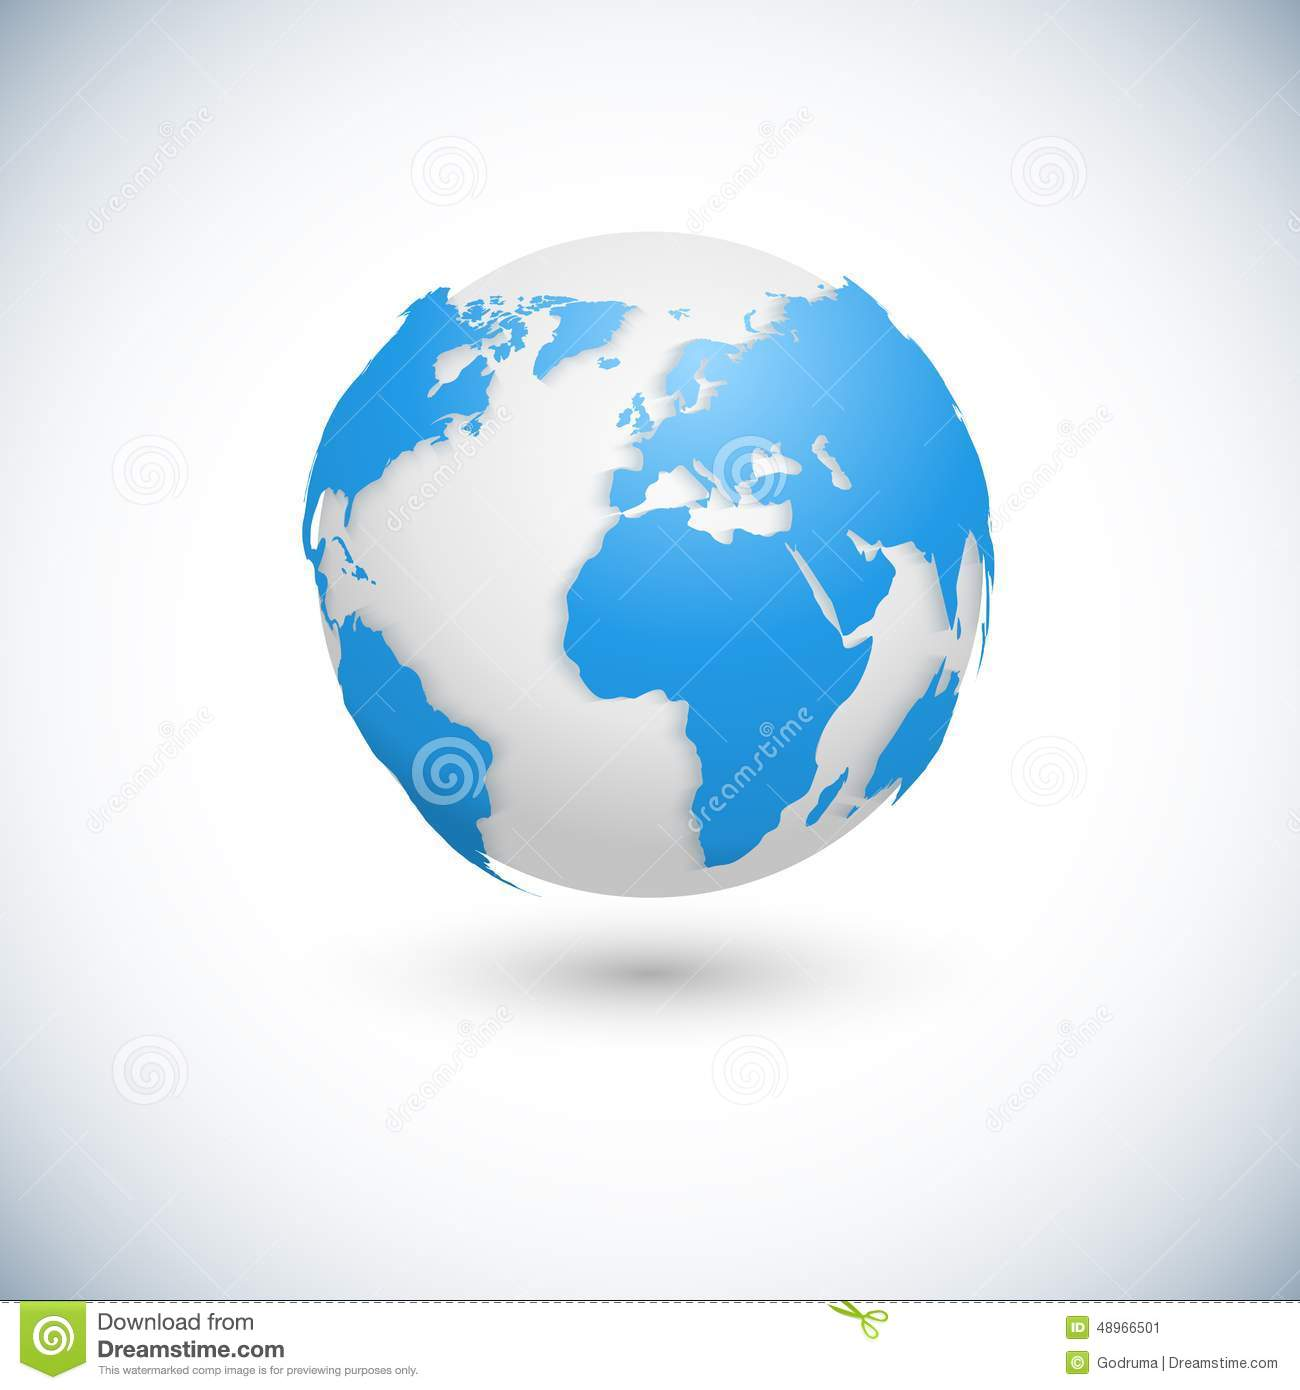 World map and globe detail vector illustration vector illustration world map and globe detail vector illustration vector illustration cartoondealer 29753088 gumiabroncs Gallery